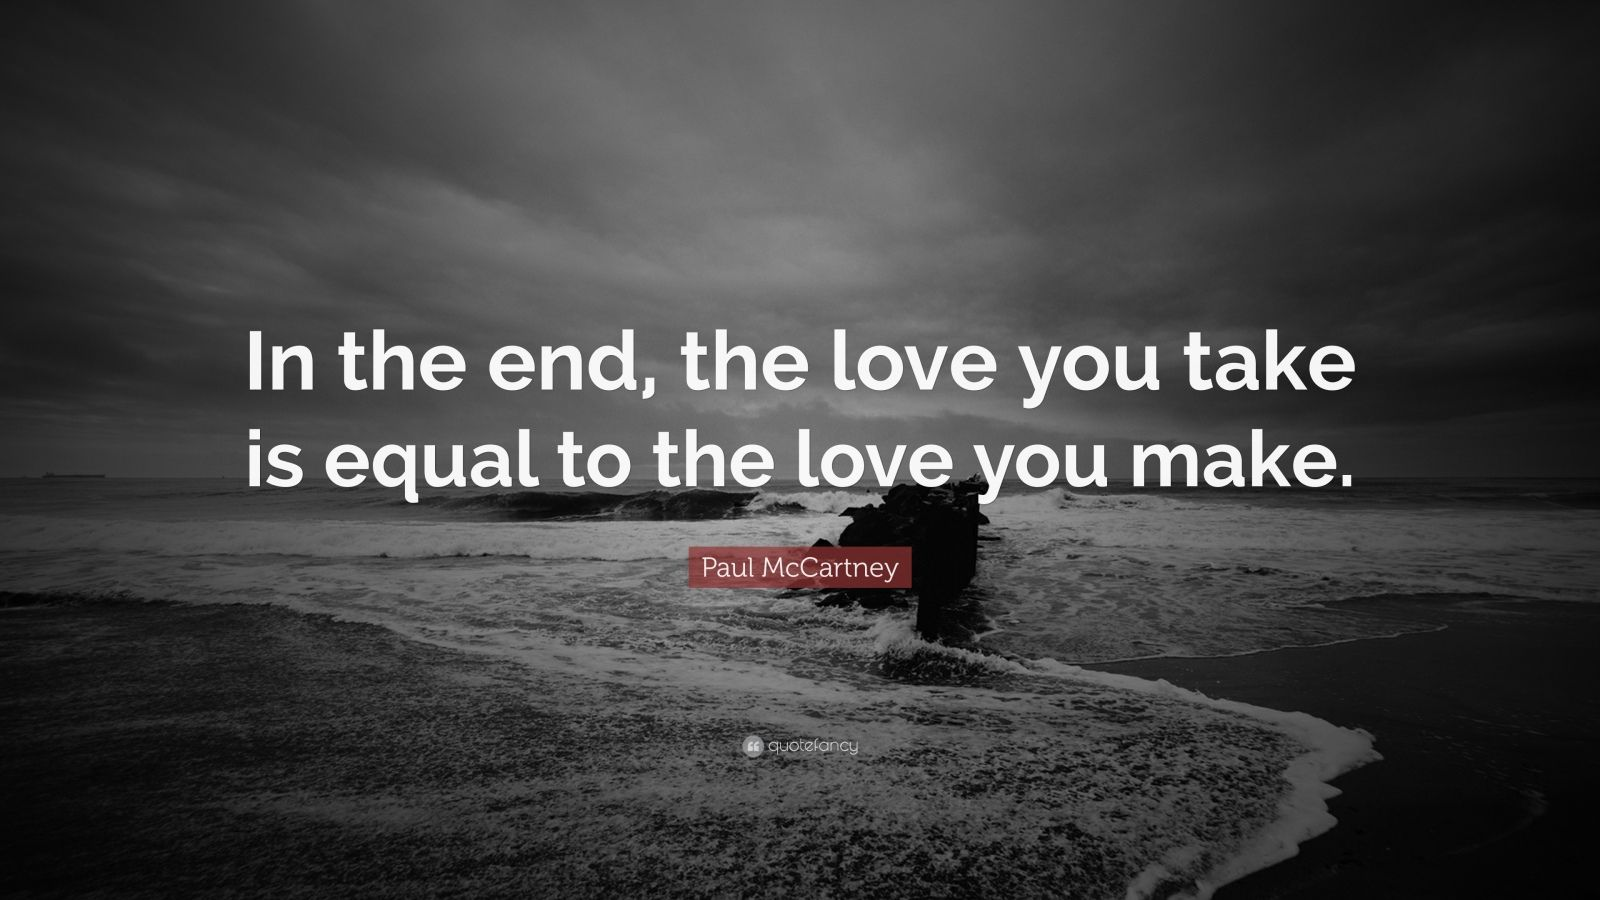 Love The End Wallpaper : Marriage Quotes (58 wallpapers) - Quotefancy